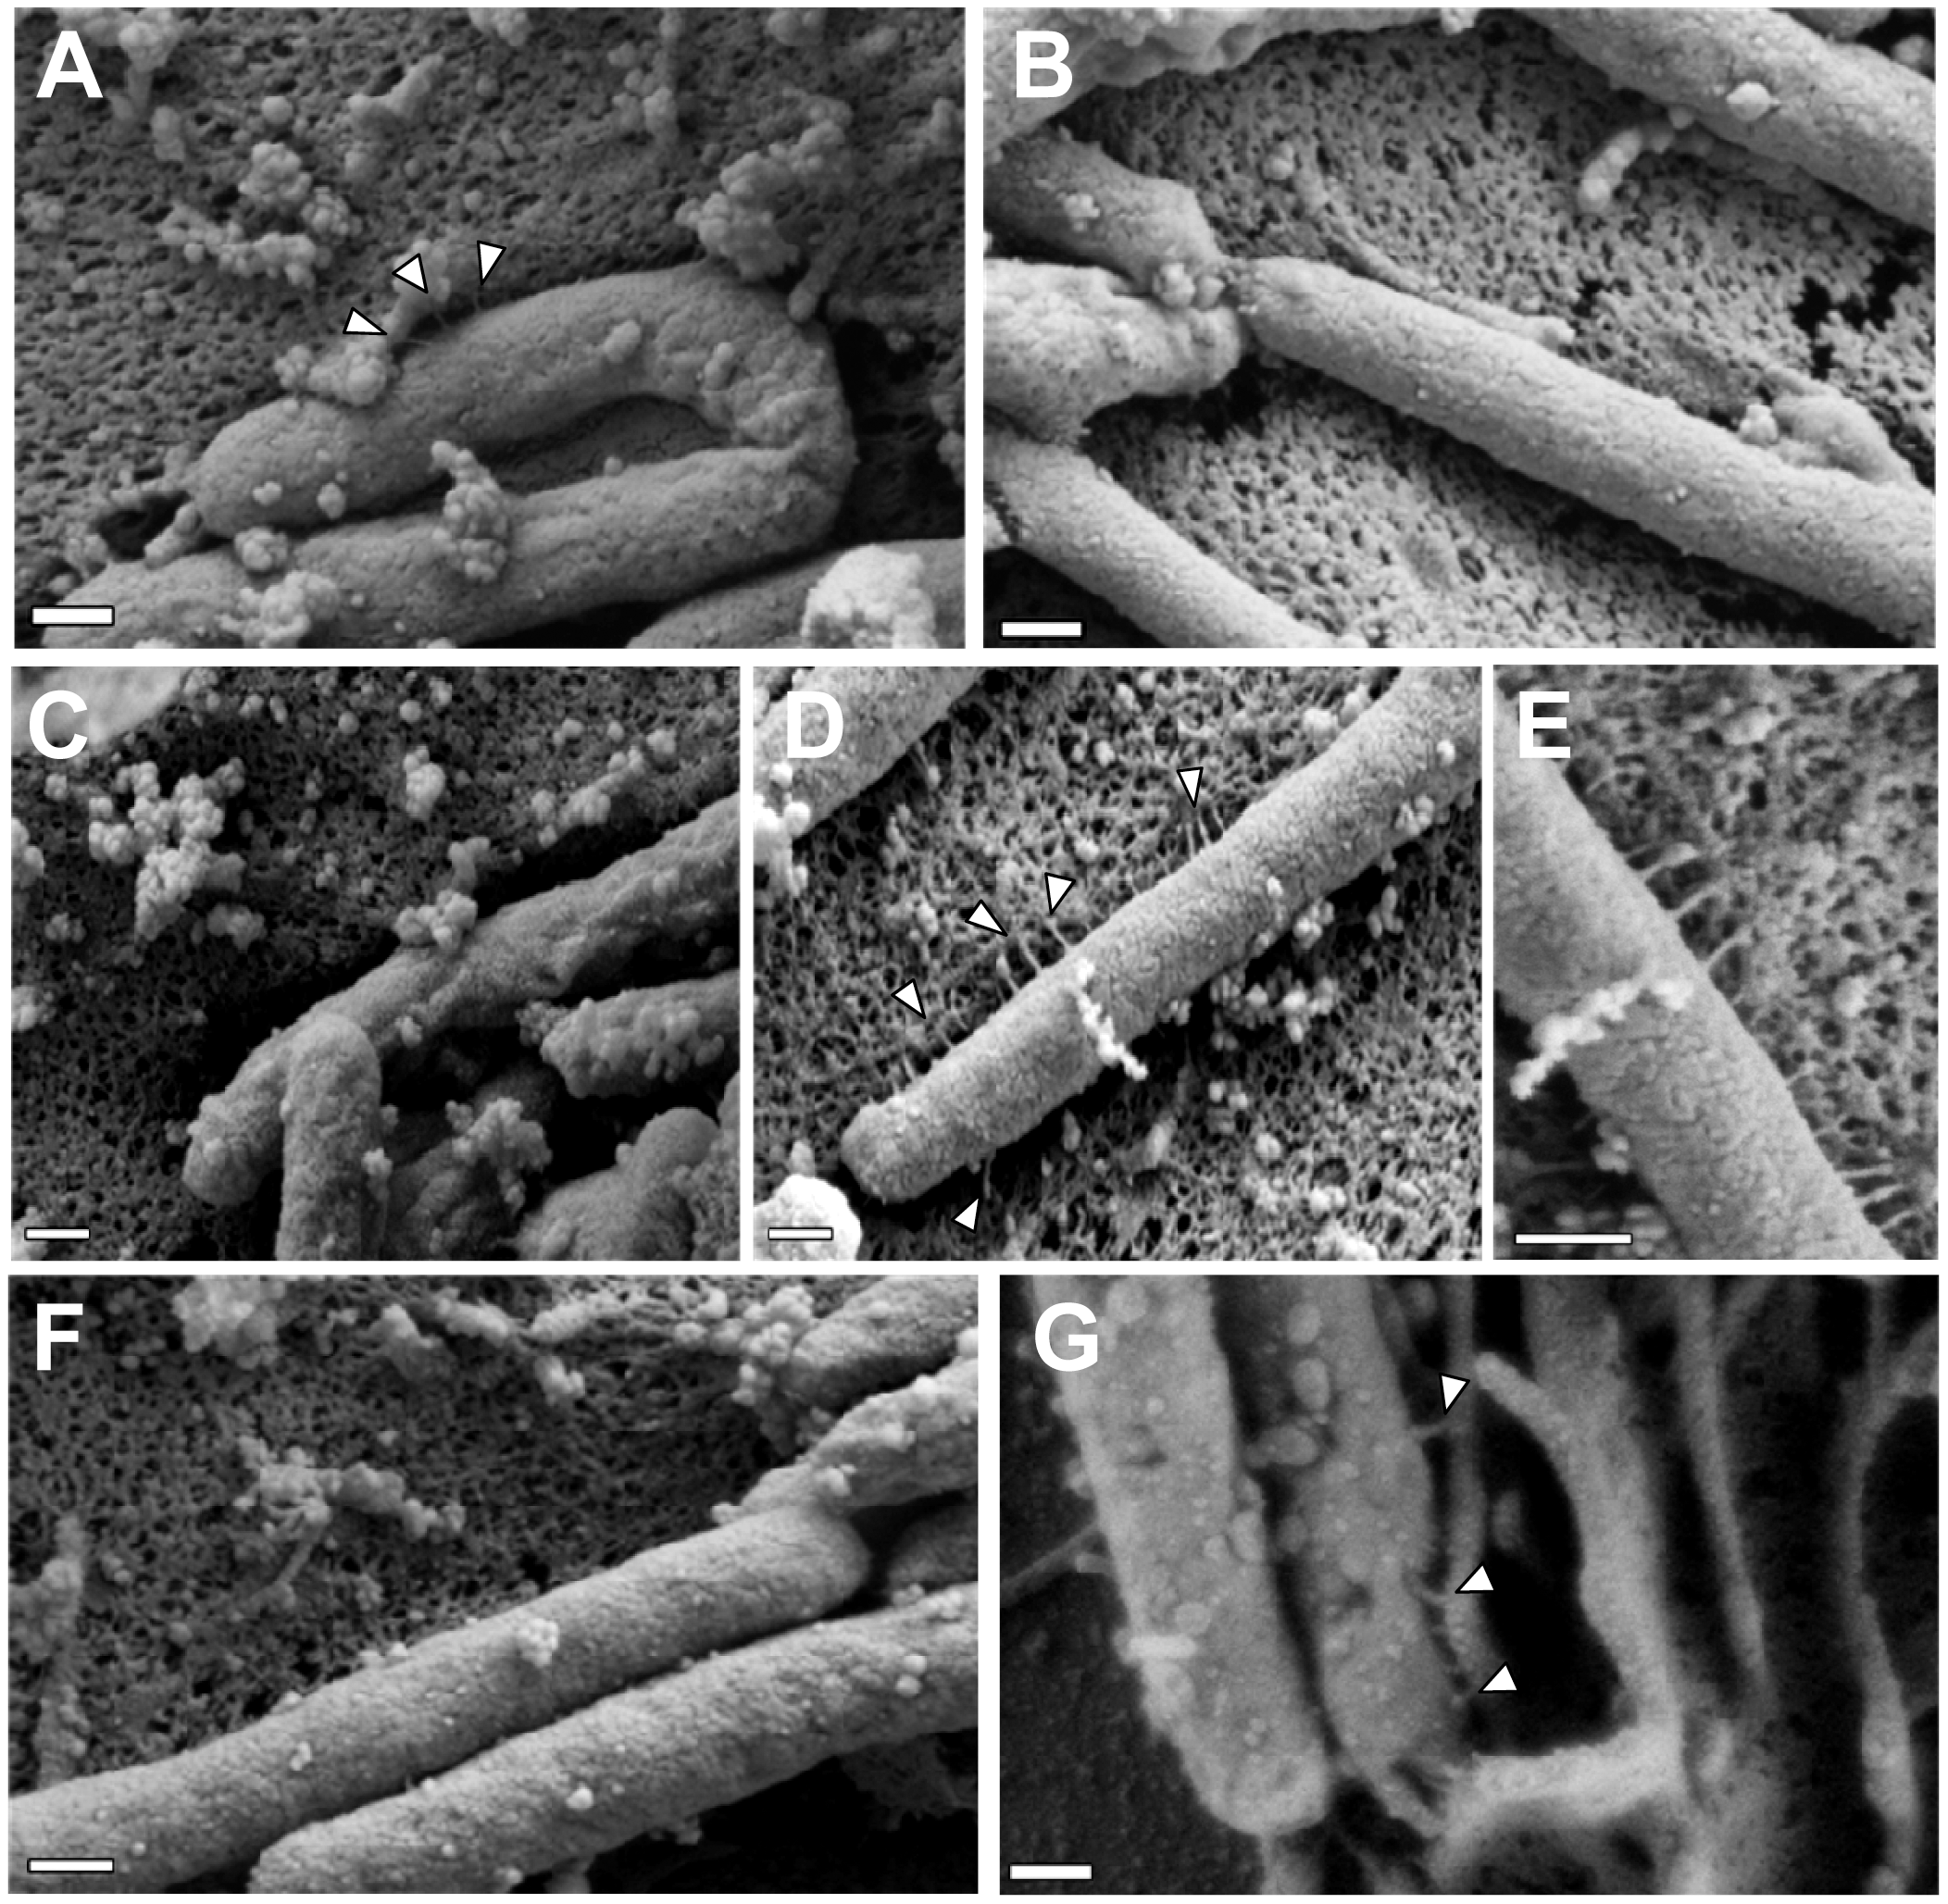 Role of CagI and CagL in pilus formation.